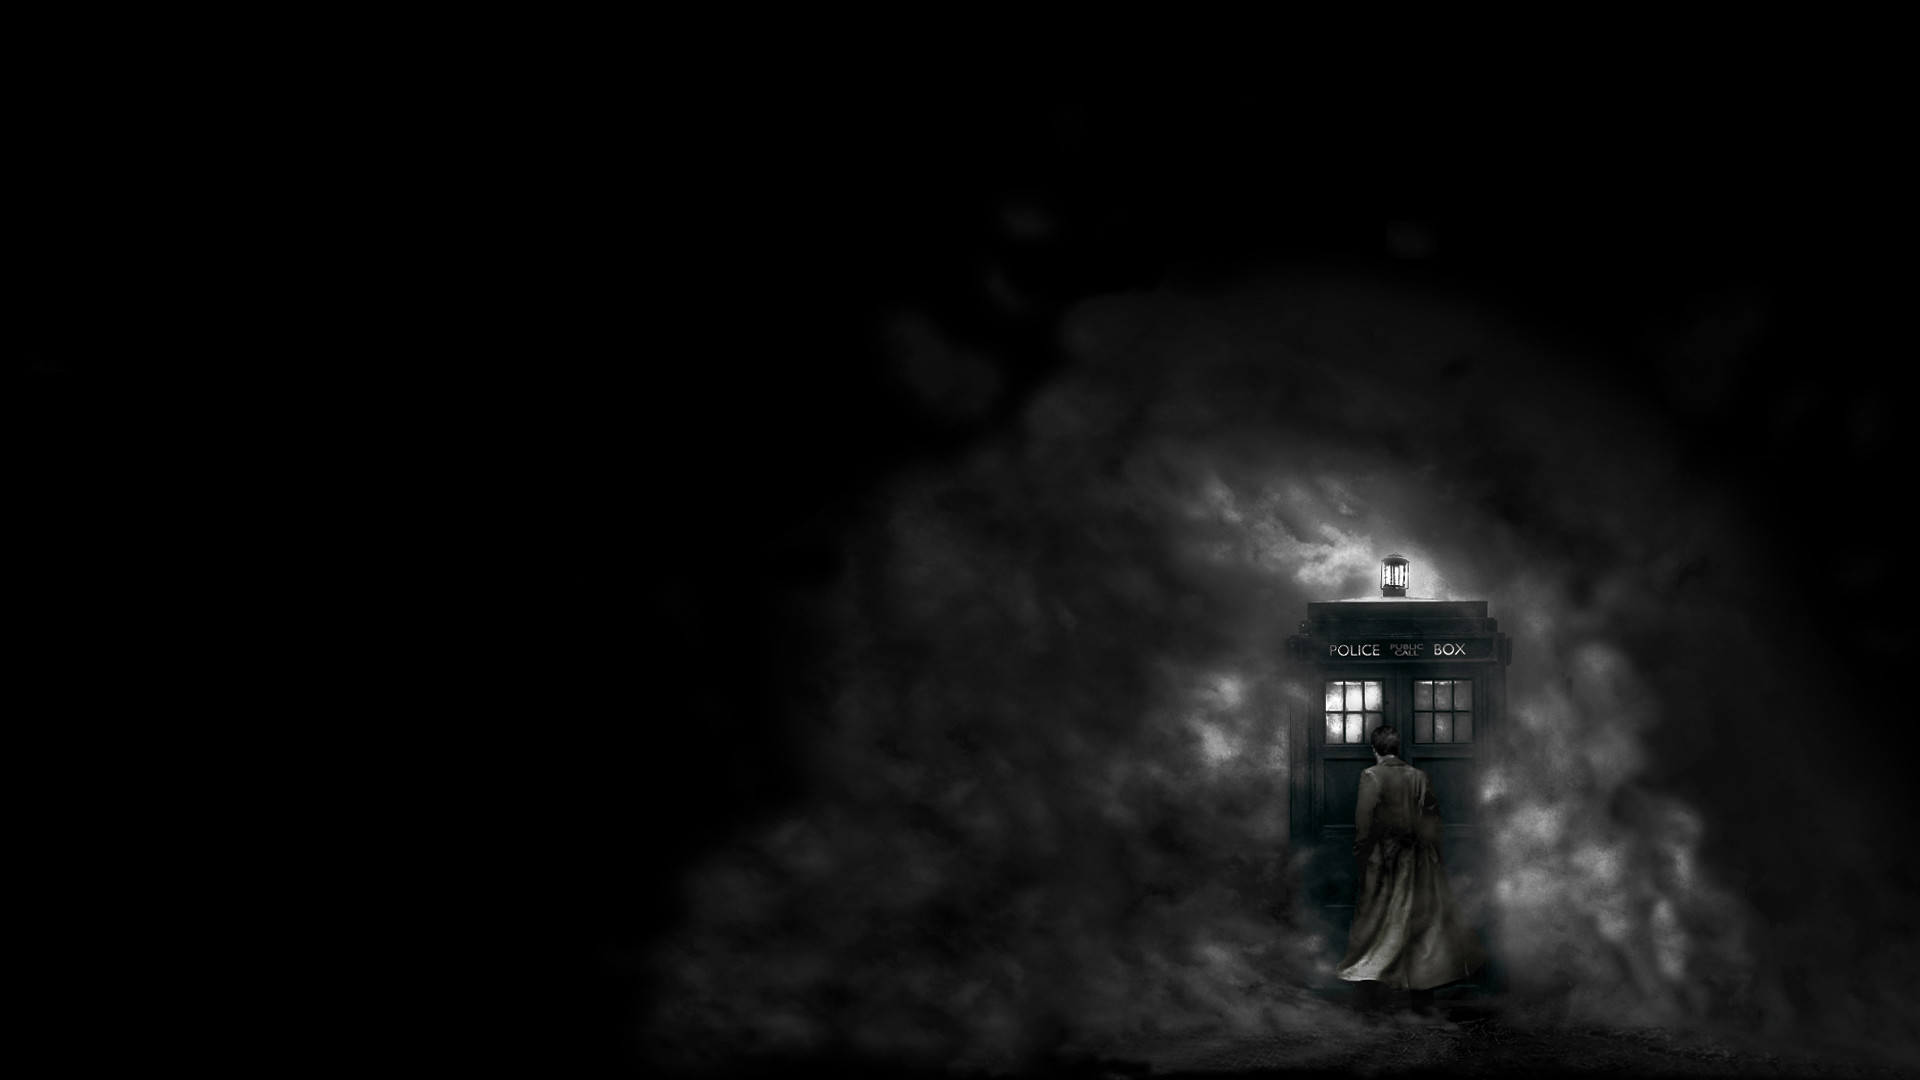 14432) Doctor Who Wallpaper Collection – WalOps.com